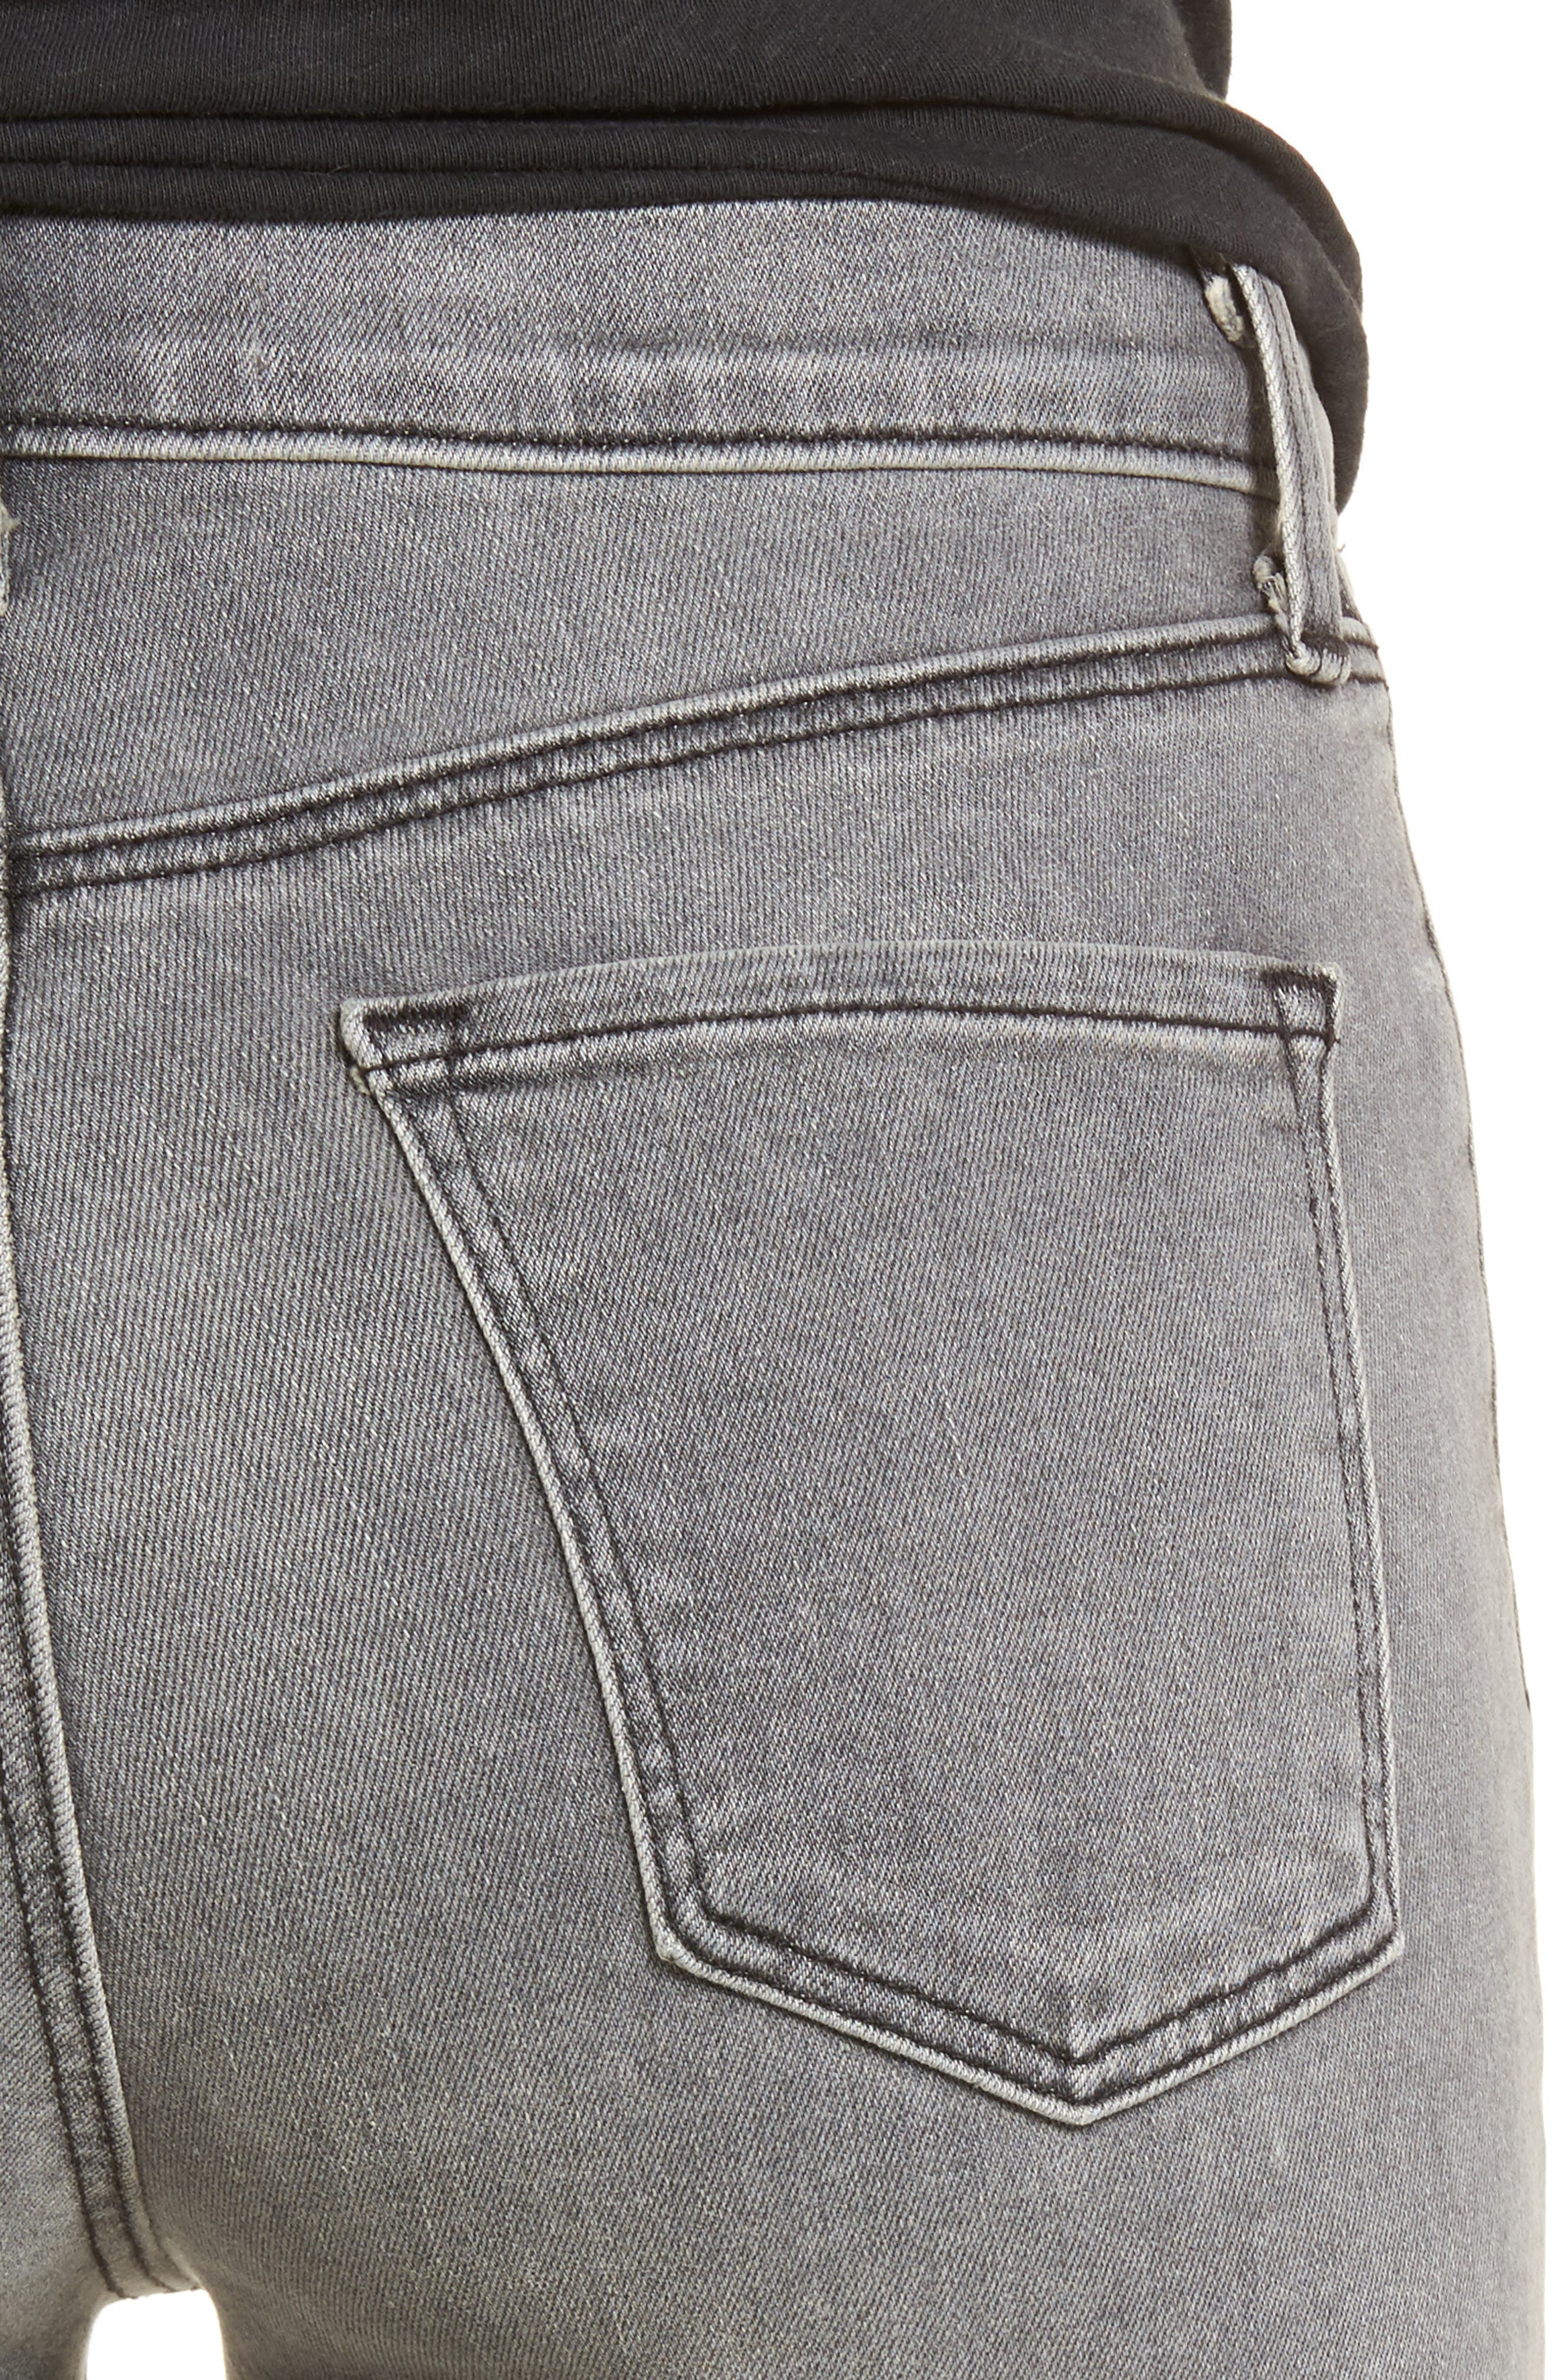 Alternate Image 4  - J Brand Maria High Waist Skinny Jeans (Pebble) (Nordstrom Exclusive)